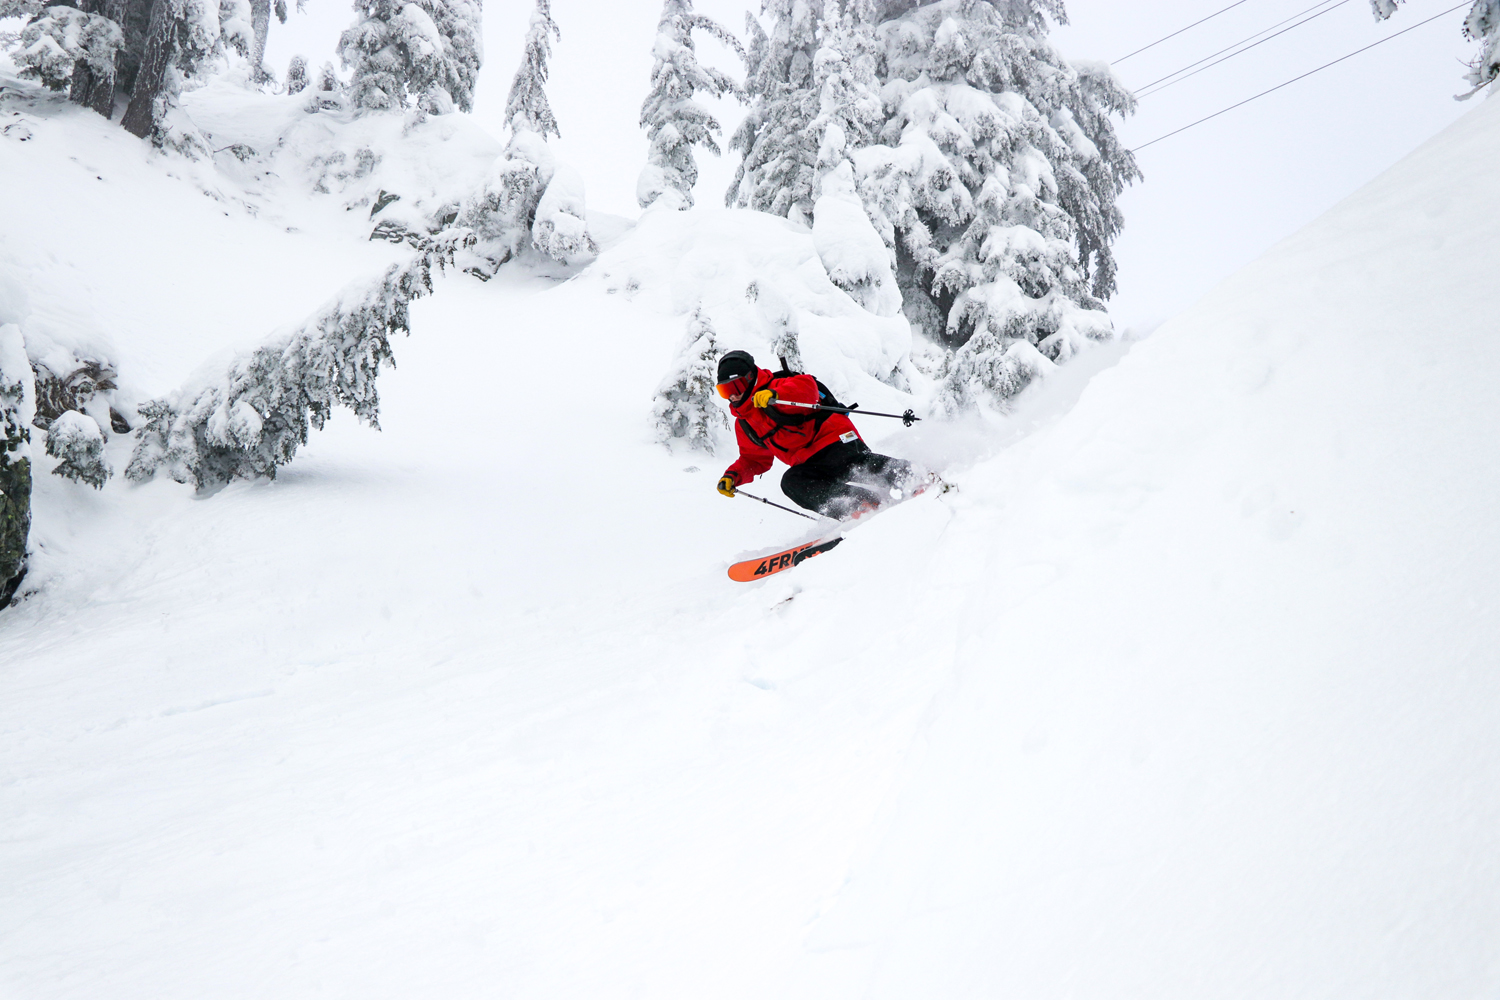 Corey Nugent charging down Schluct at Alpental.